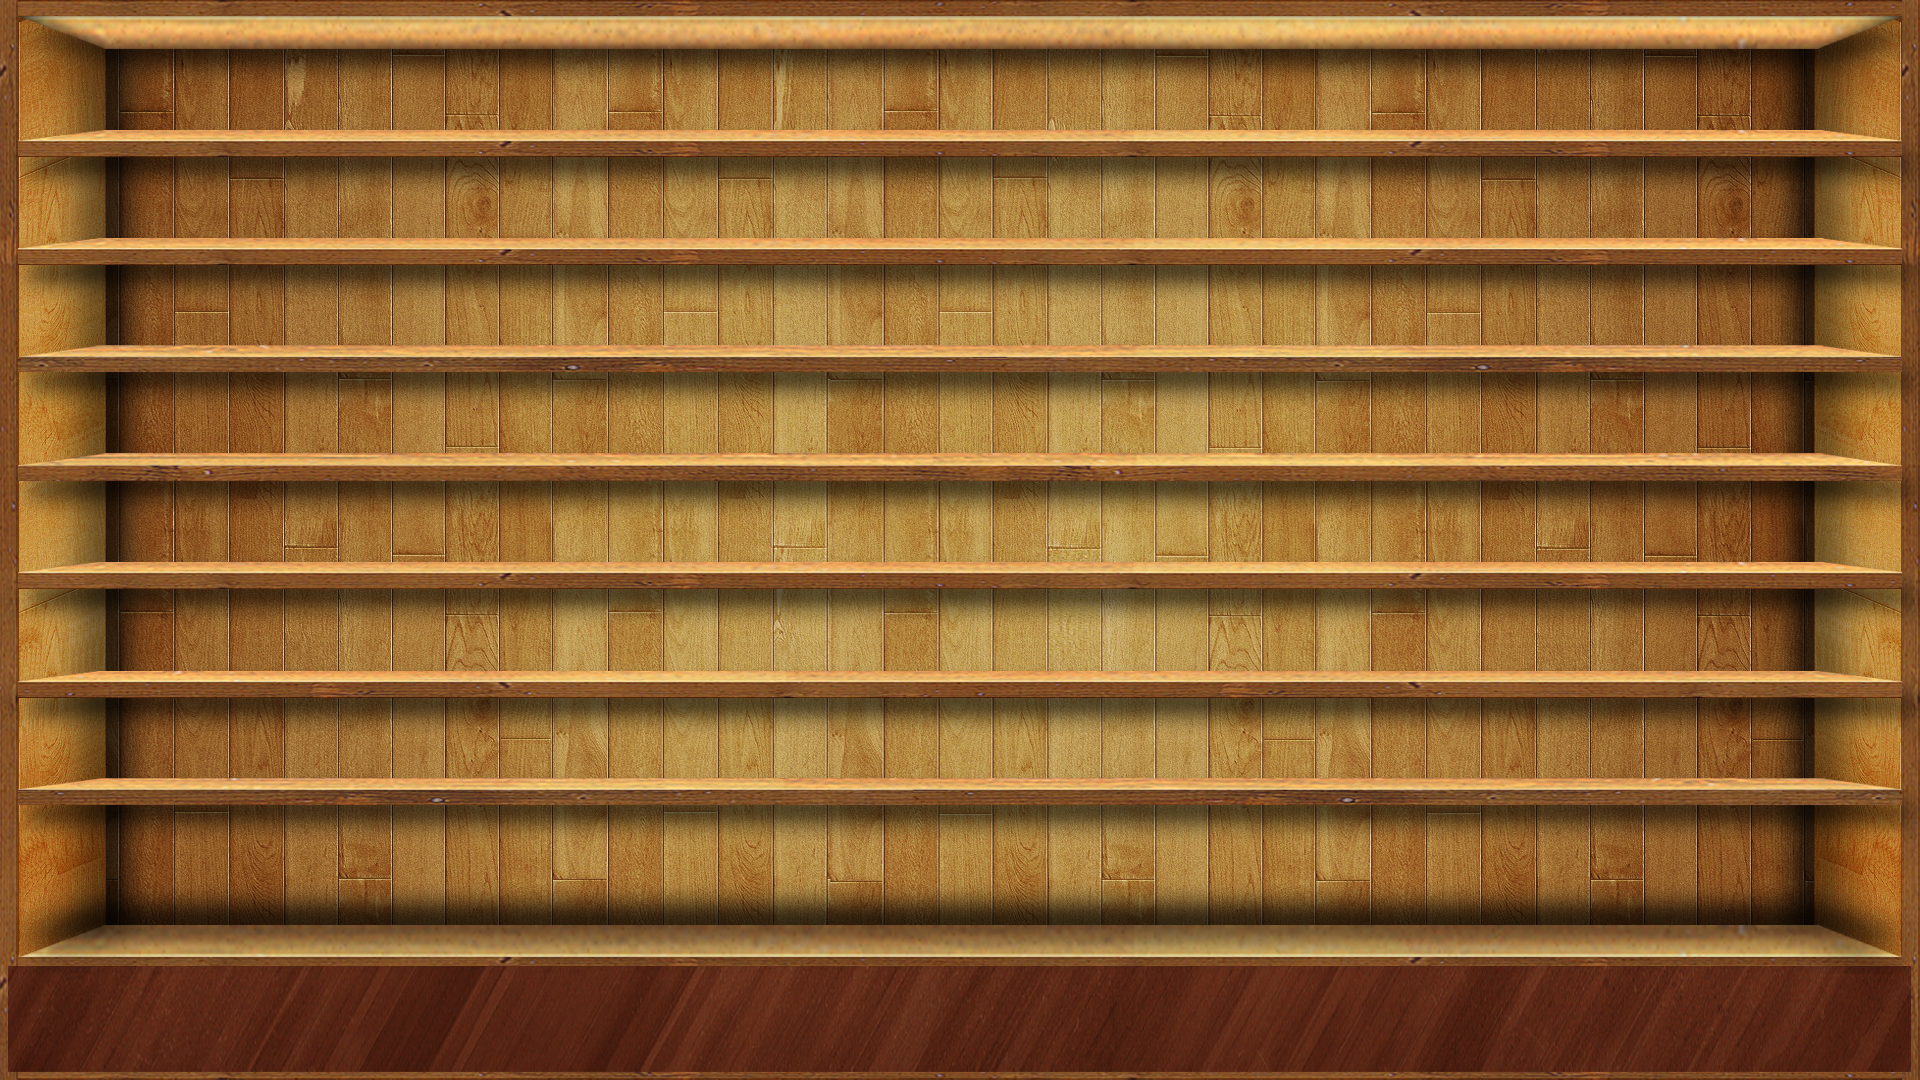 V.31 Shelves, High Resolution Images - Store Shelf HD PNG